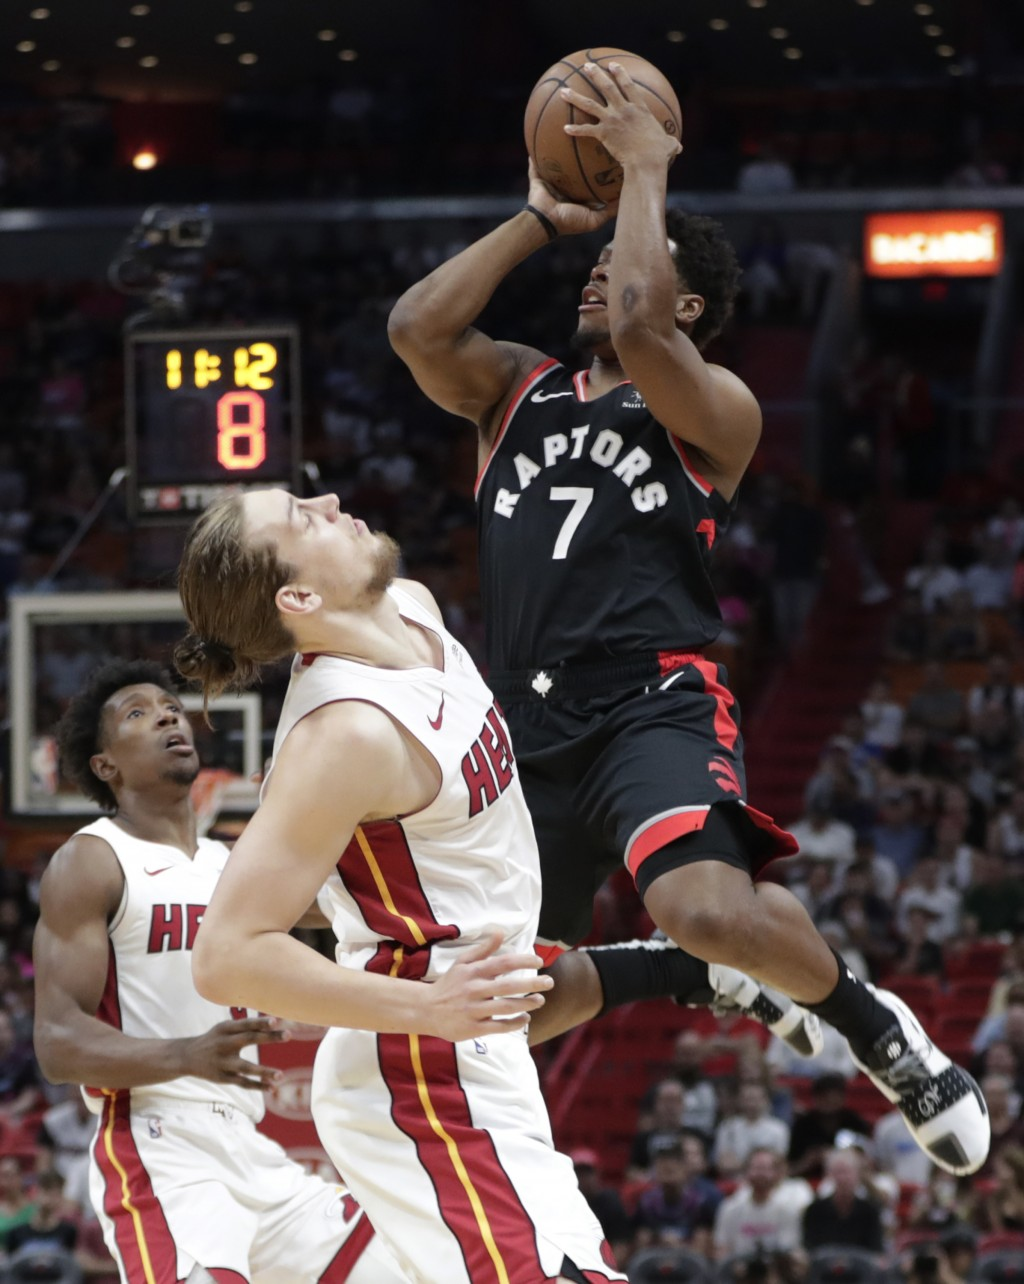 Toronto Raptors guard Kyle Lowry (7) shoots over Miami Heat forward Kelly Olynyk during the first half of an NBA basketball game, Sunday, March 10, 20